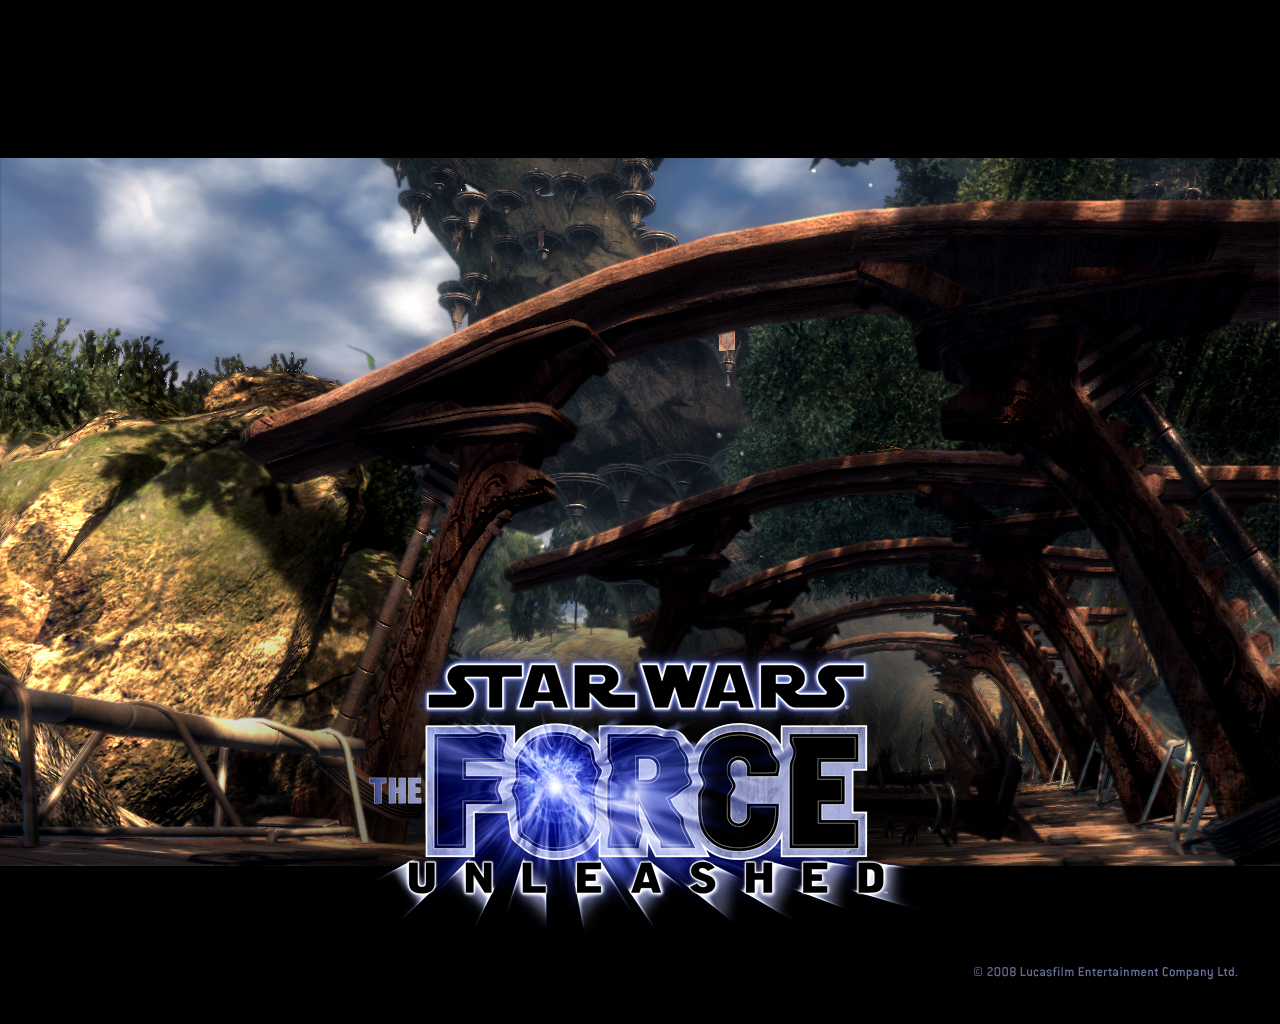 Star Wars The Force Unleashed Wallpaper 6 1280 1024